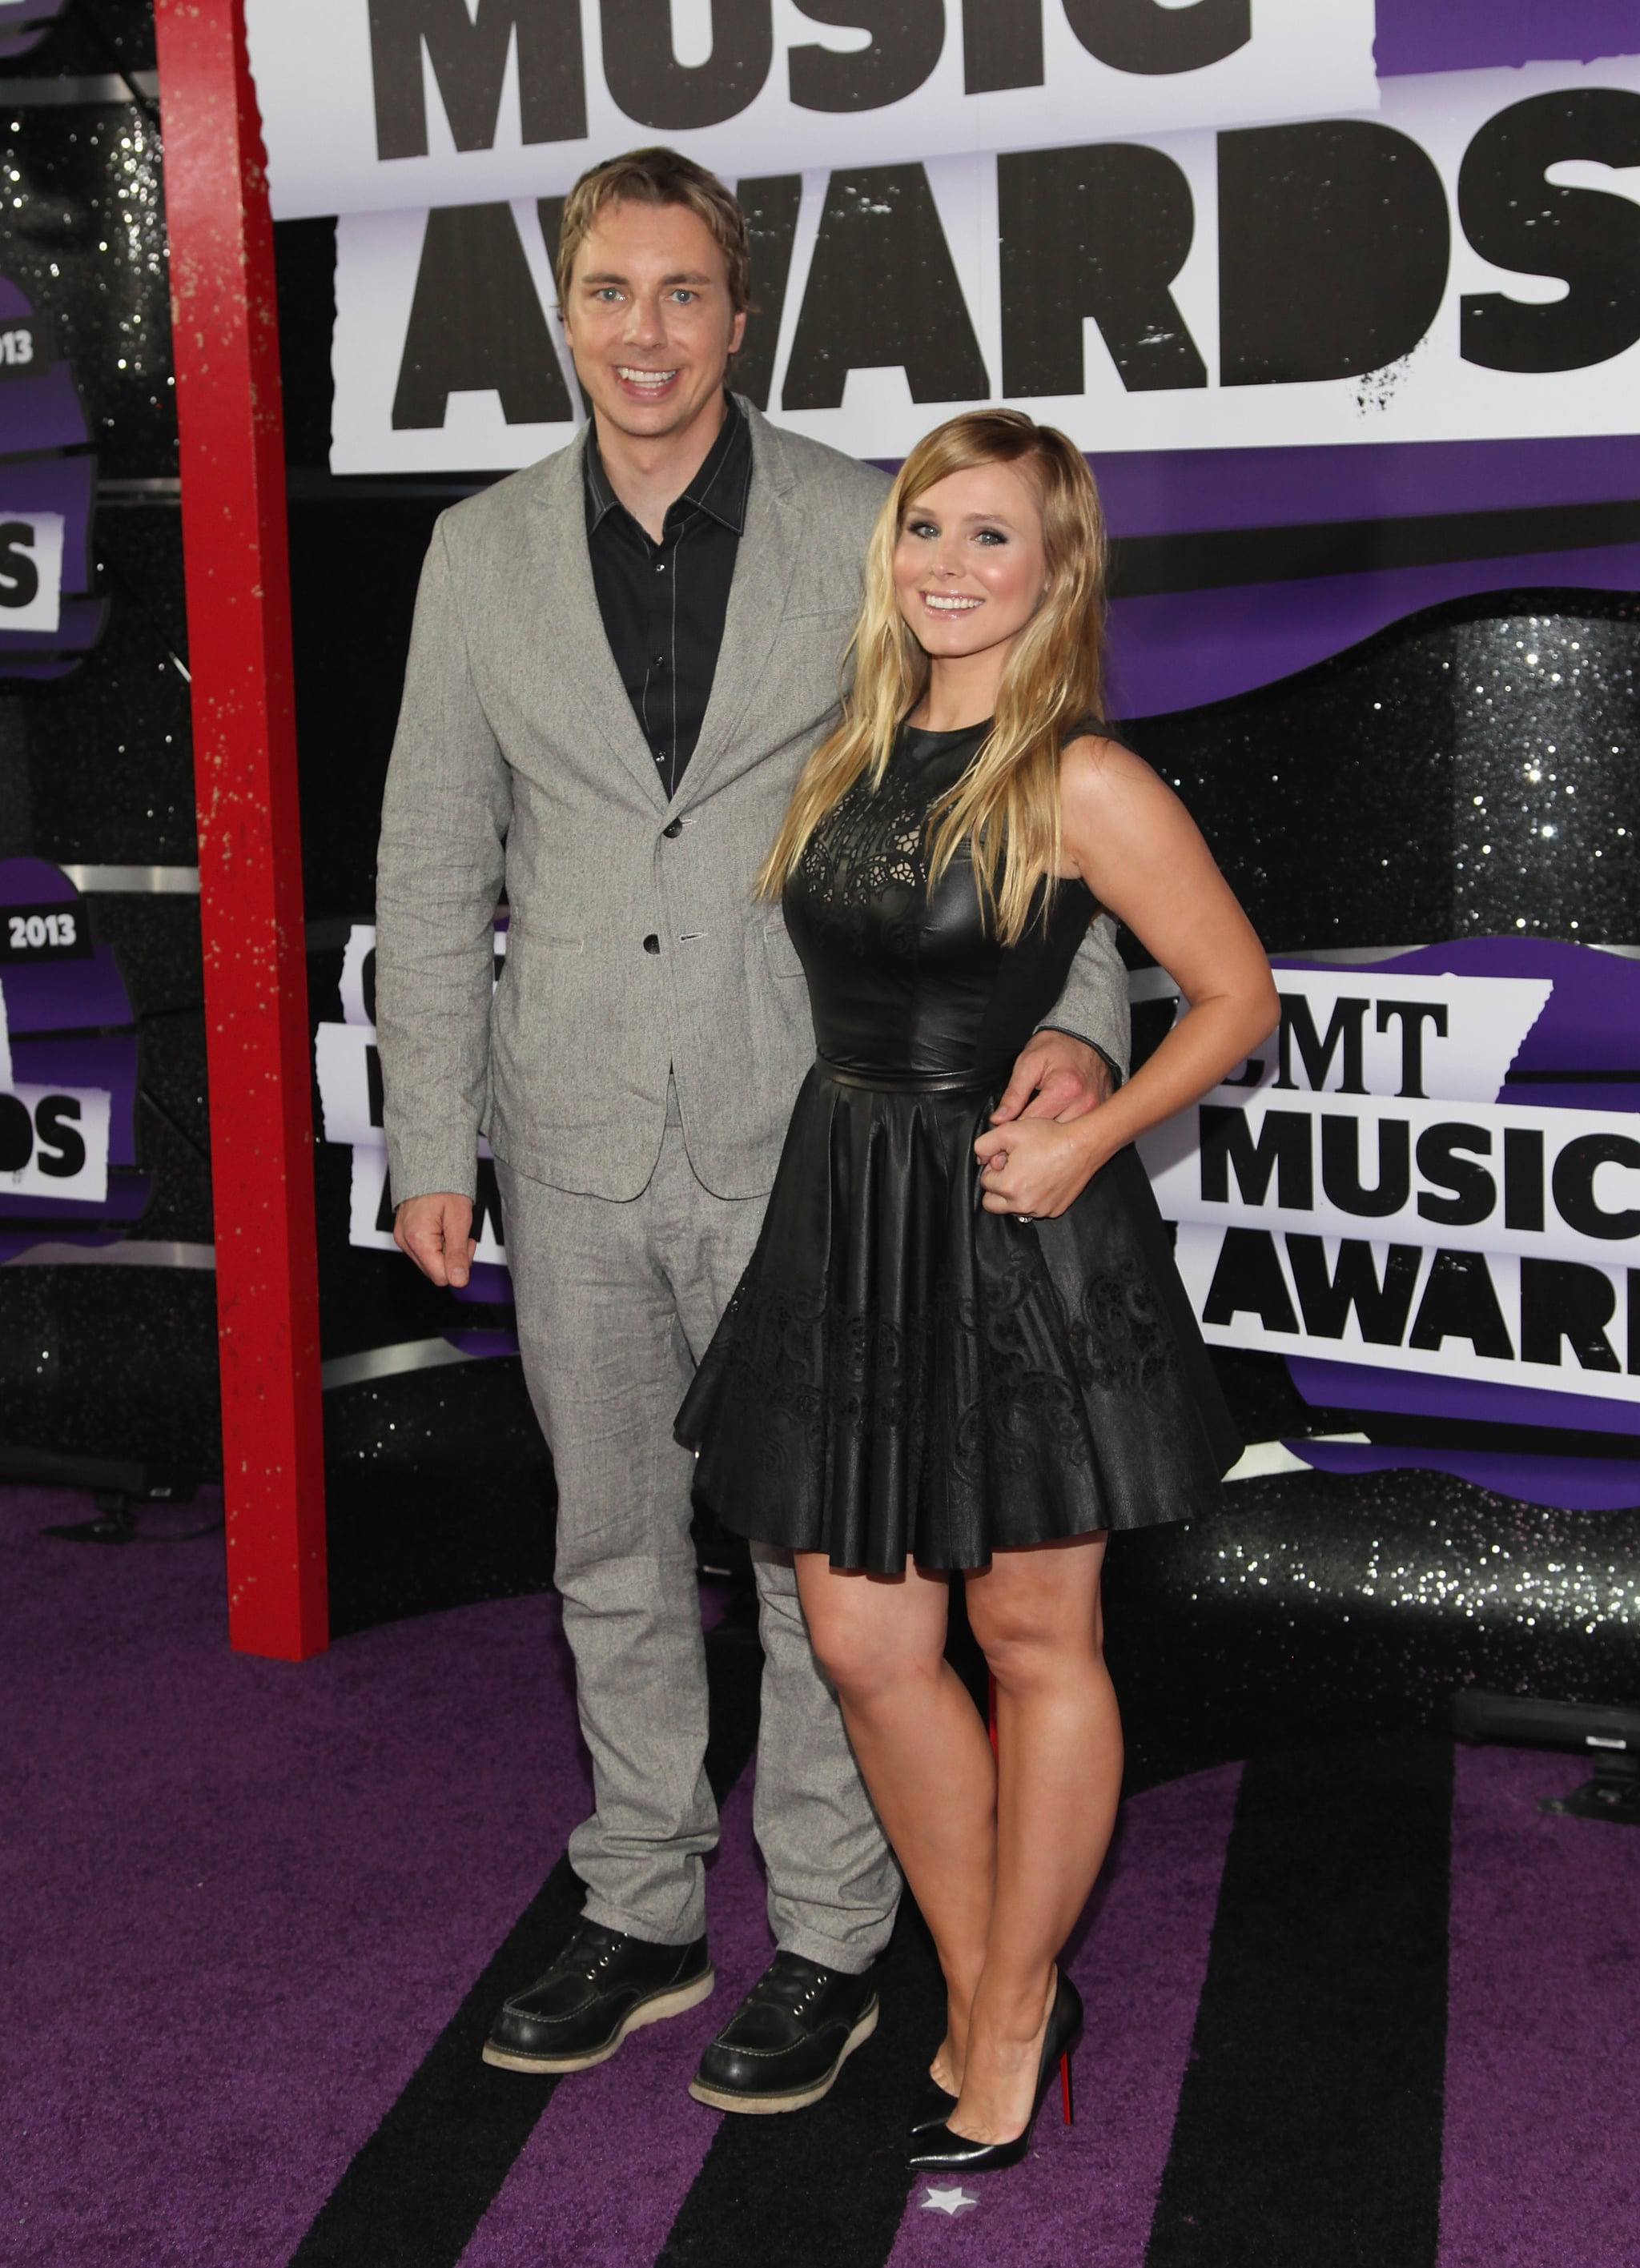 Kristen Bell attended the Country Music Awards with Dax Shepard in Nashville in June 2013.